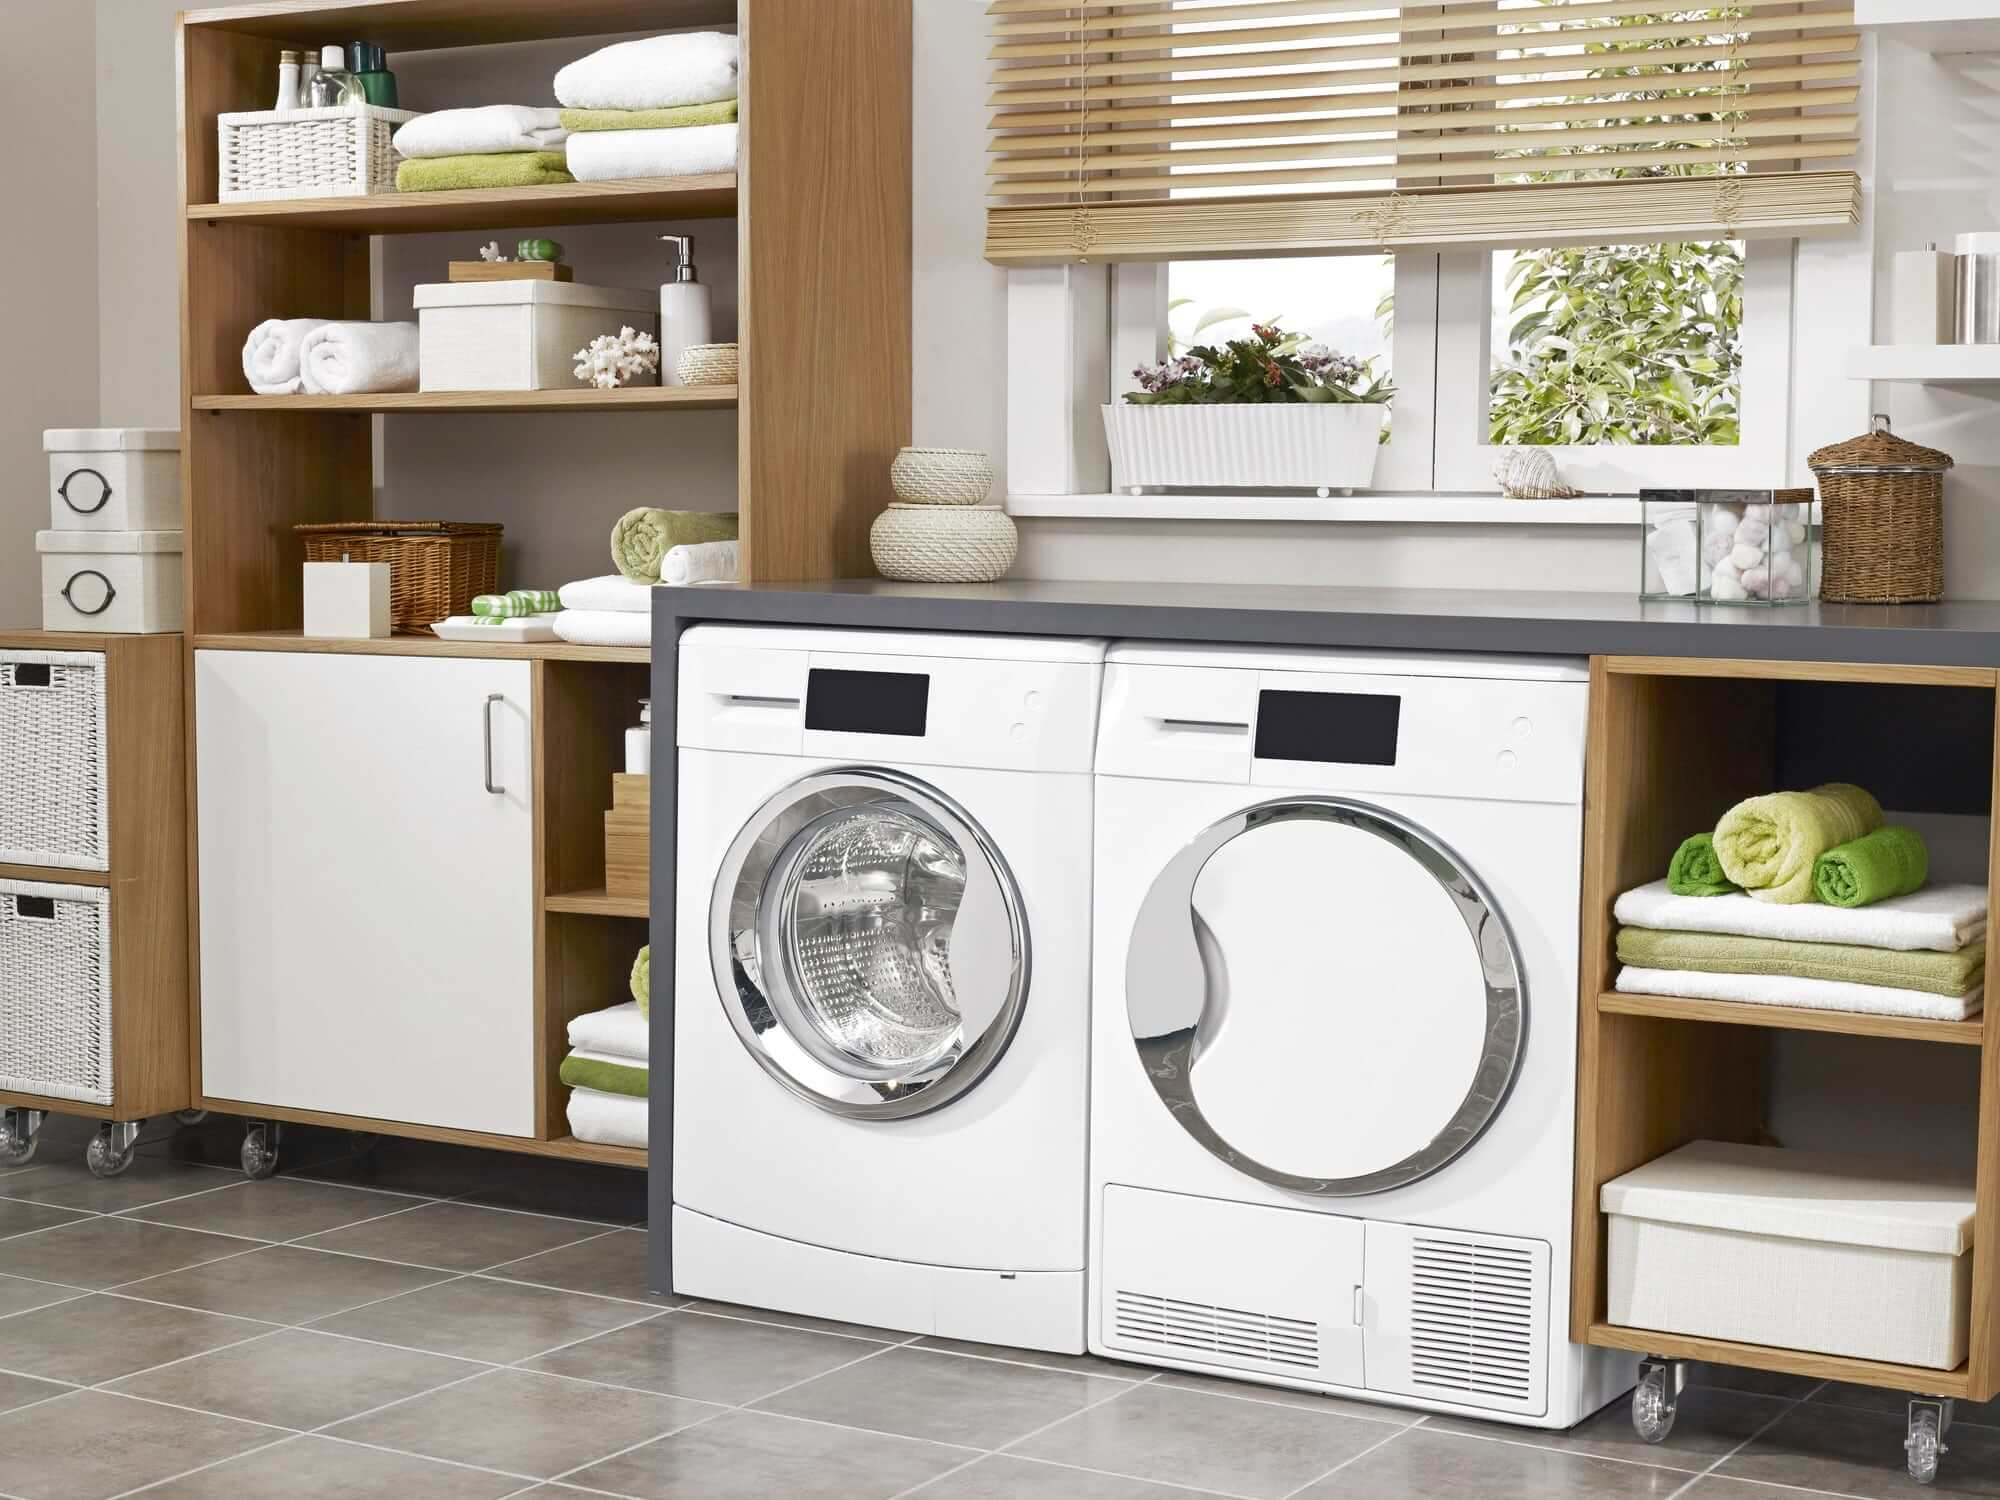 What Should You Consider for Your Laundry Room Ventilation?